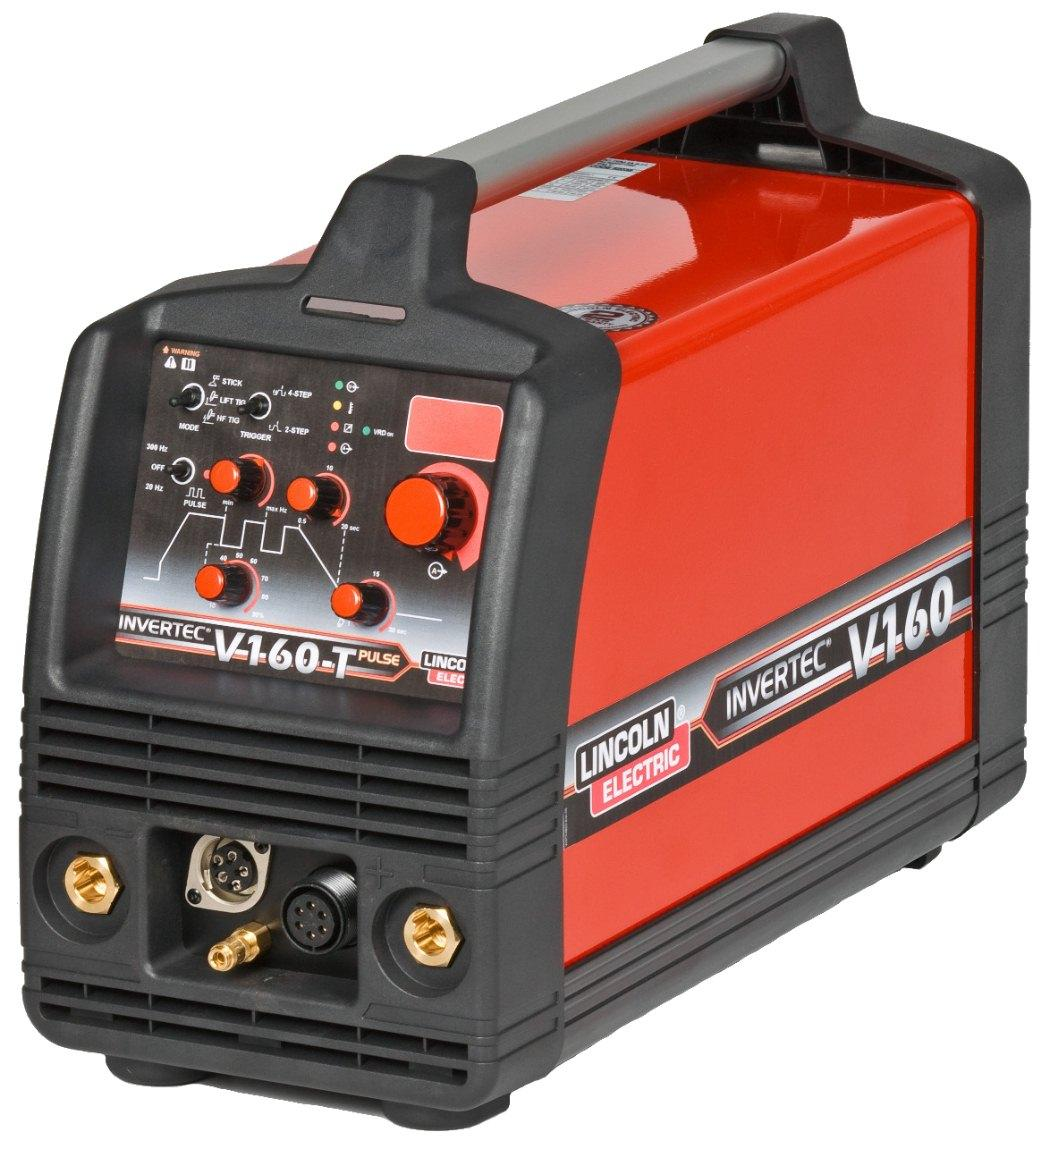 K12018-3  LINCOLN INVERTEC V160 TP - 2V CE TIG POWER SOURCE